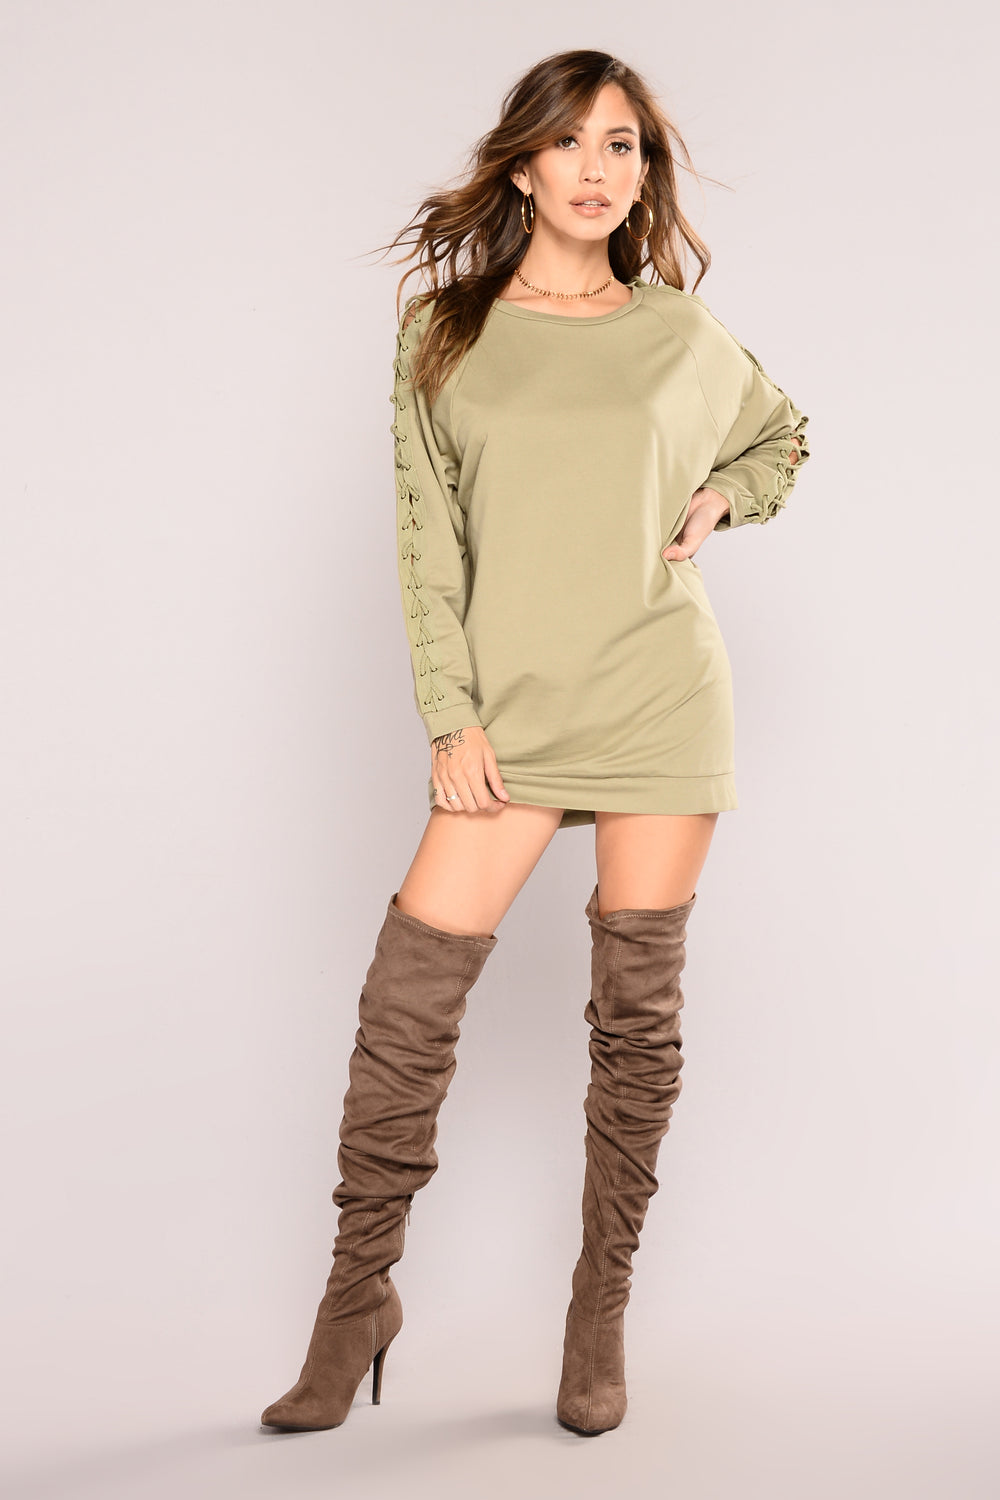 Lace You Up Tunic Sweater - Light Olive